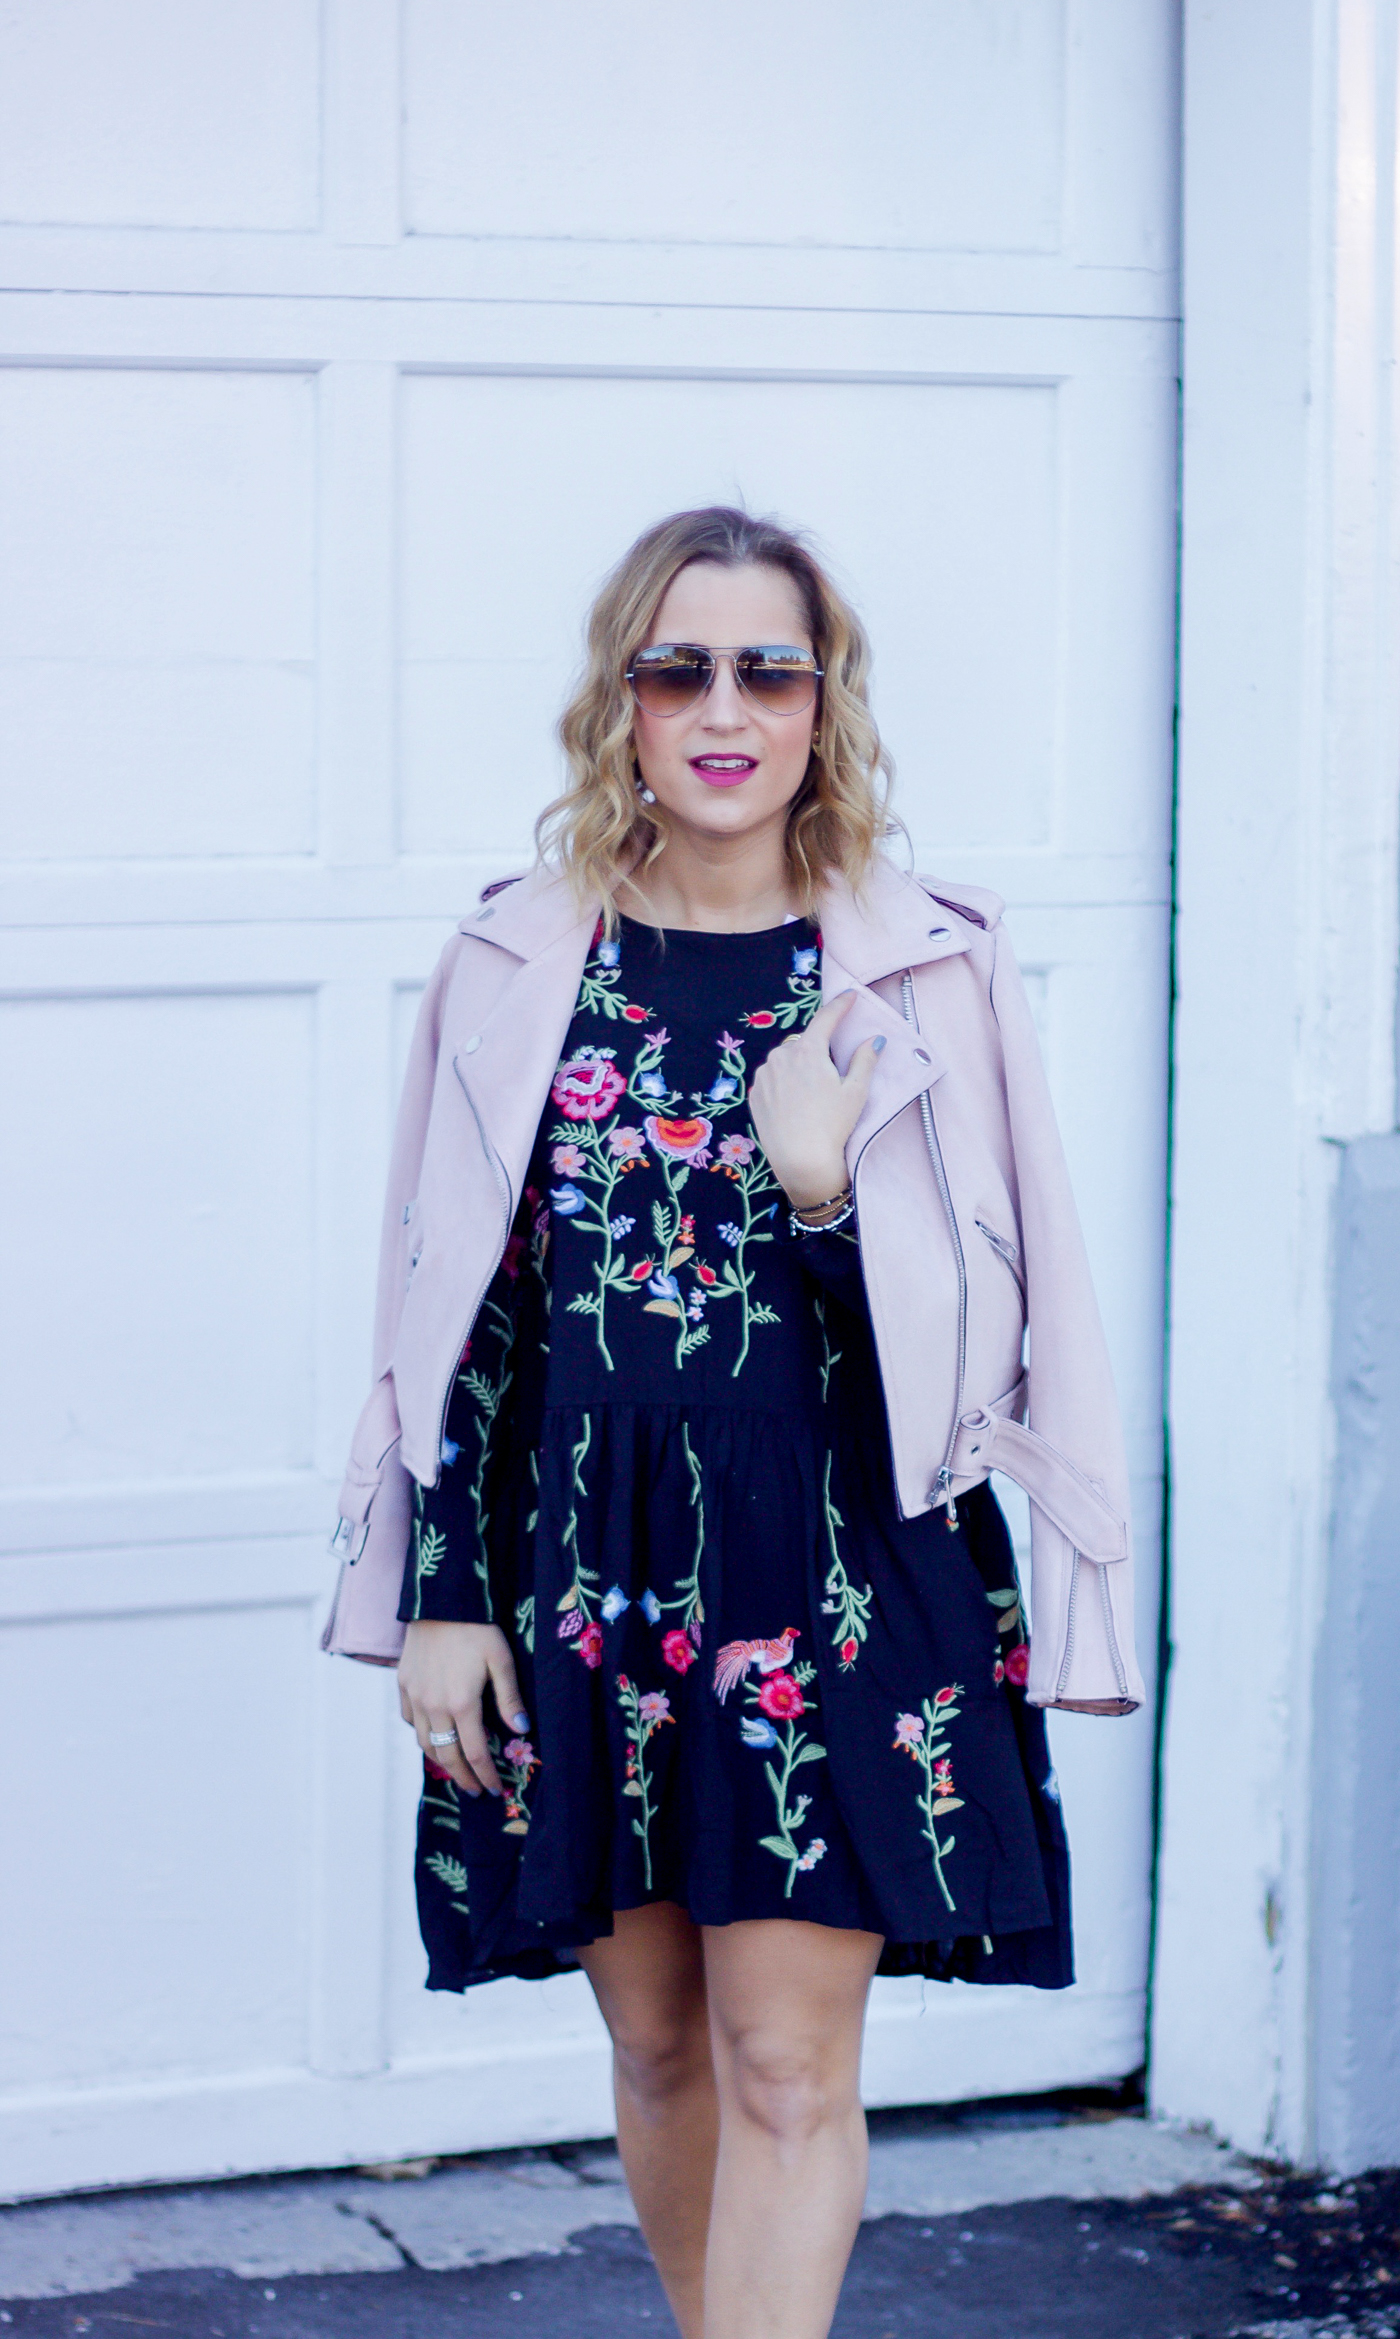 Toronto fashion and lifestyle blogger is wearing a floral dress from Chicwish